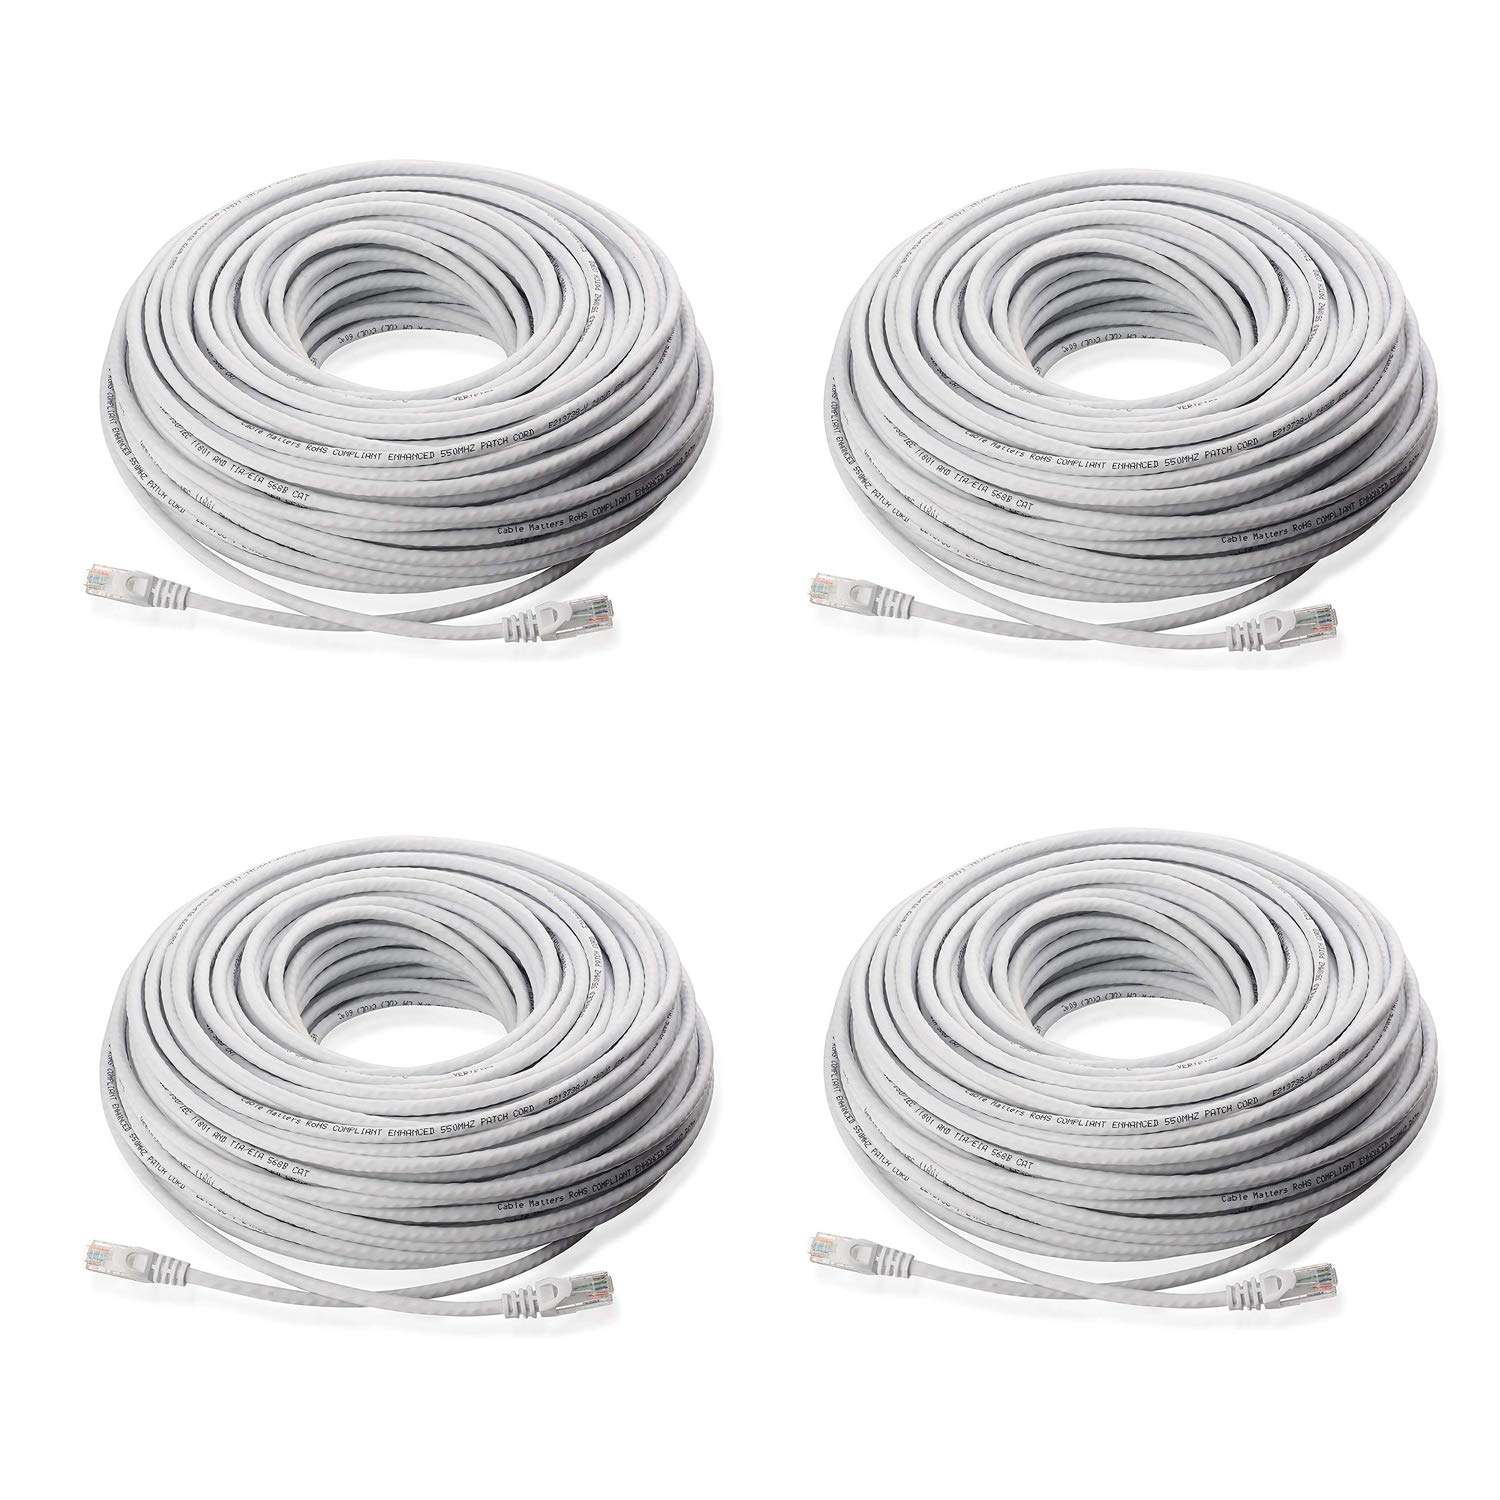 Lknewtrend (4) 100FT Feet CAT5 Cat5e Ethernet Patch Cable - RJ45 Computer Network Internet Wire PoE Switch Cord (4 Pack, 100 FT) by GLKNT